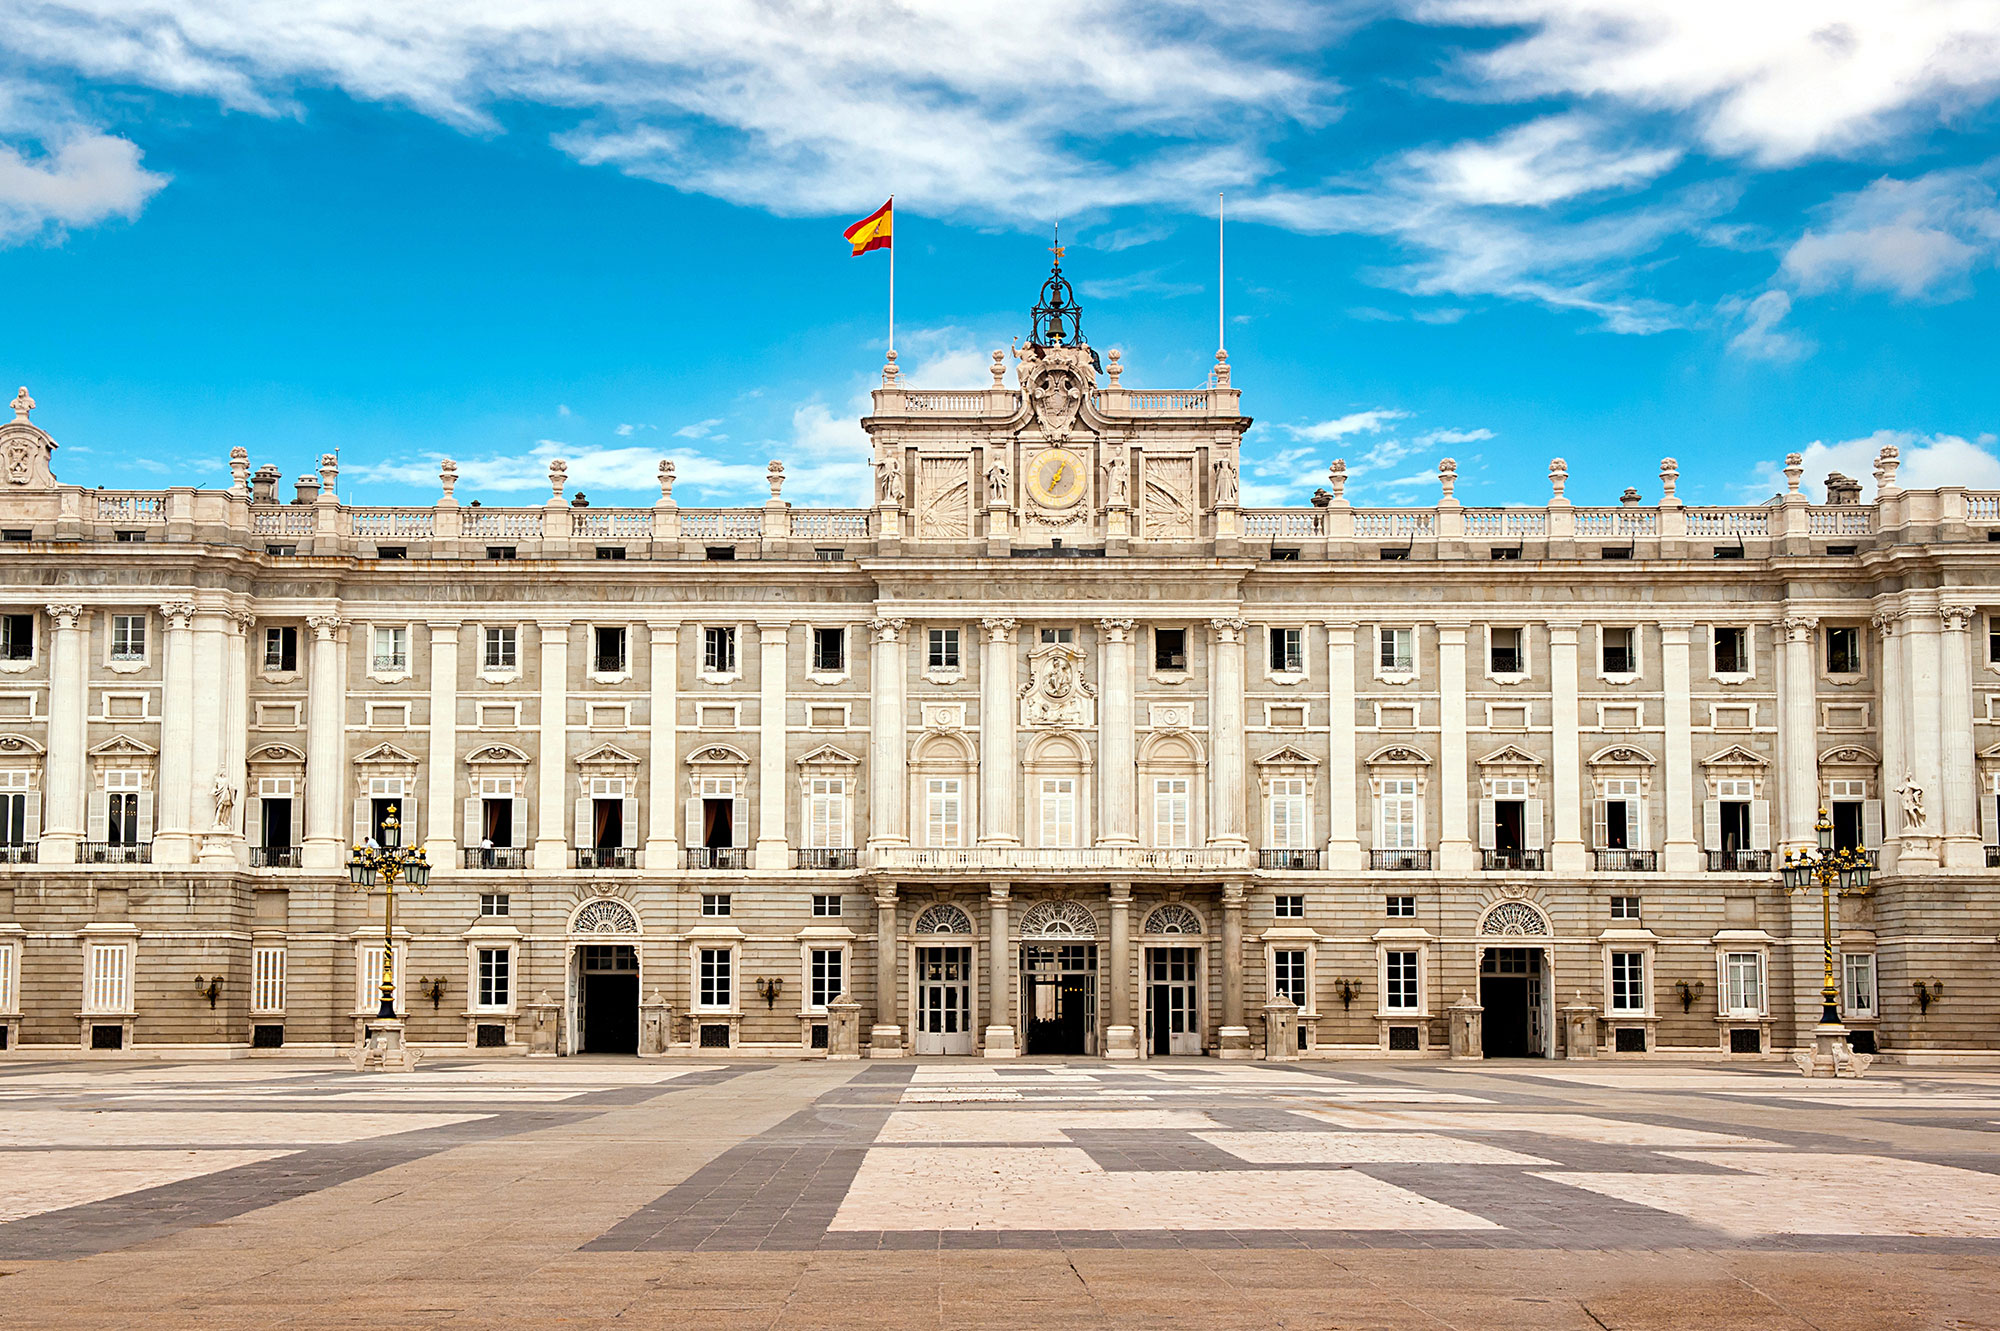 Front view of Palacio Real de Madrid (Royal Palace of Madrid), Spain - main gate.